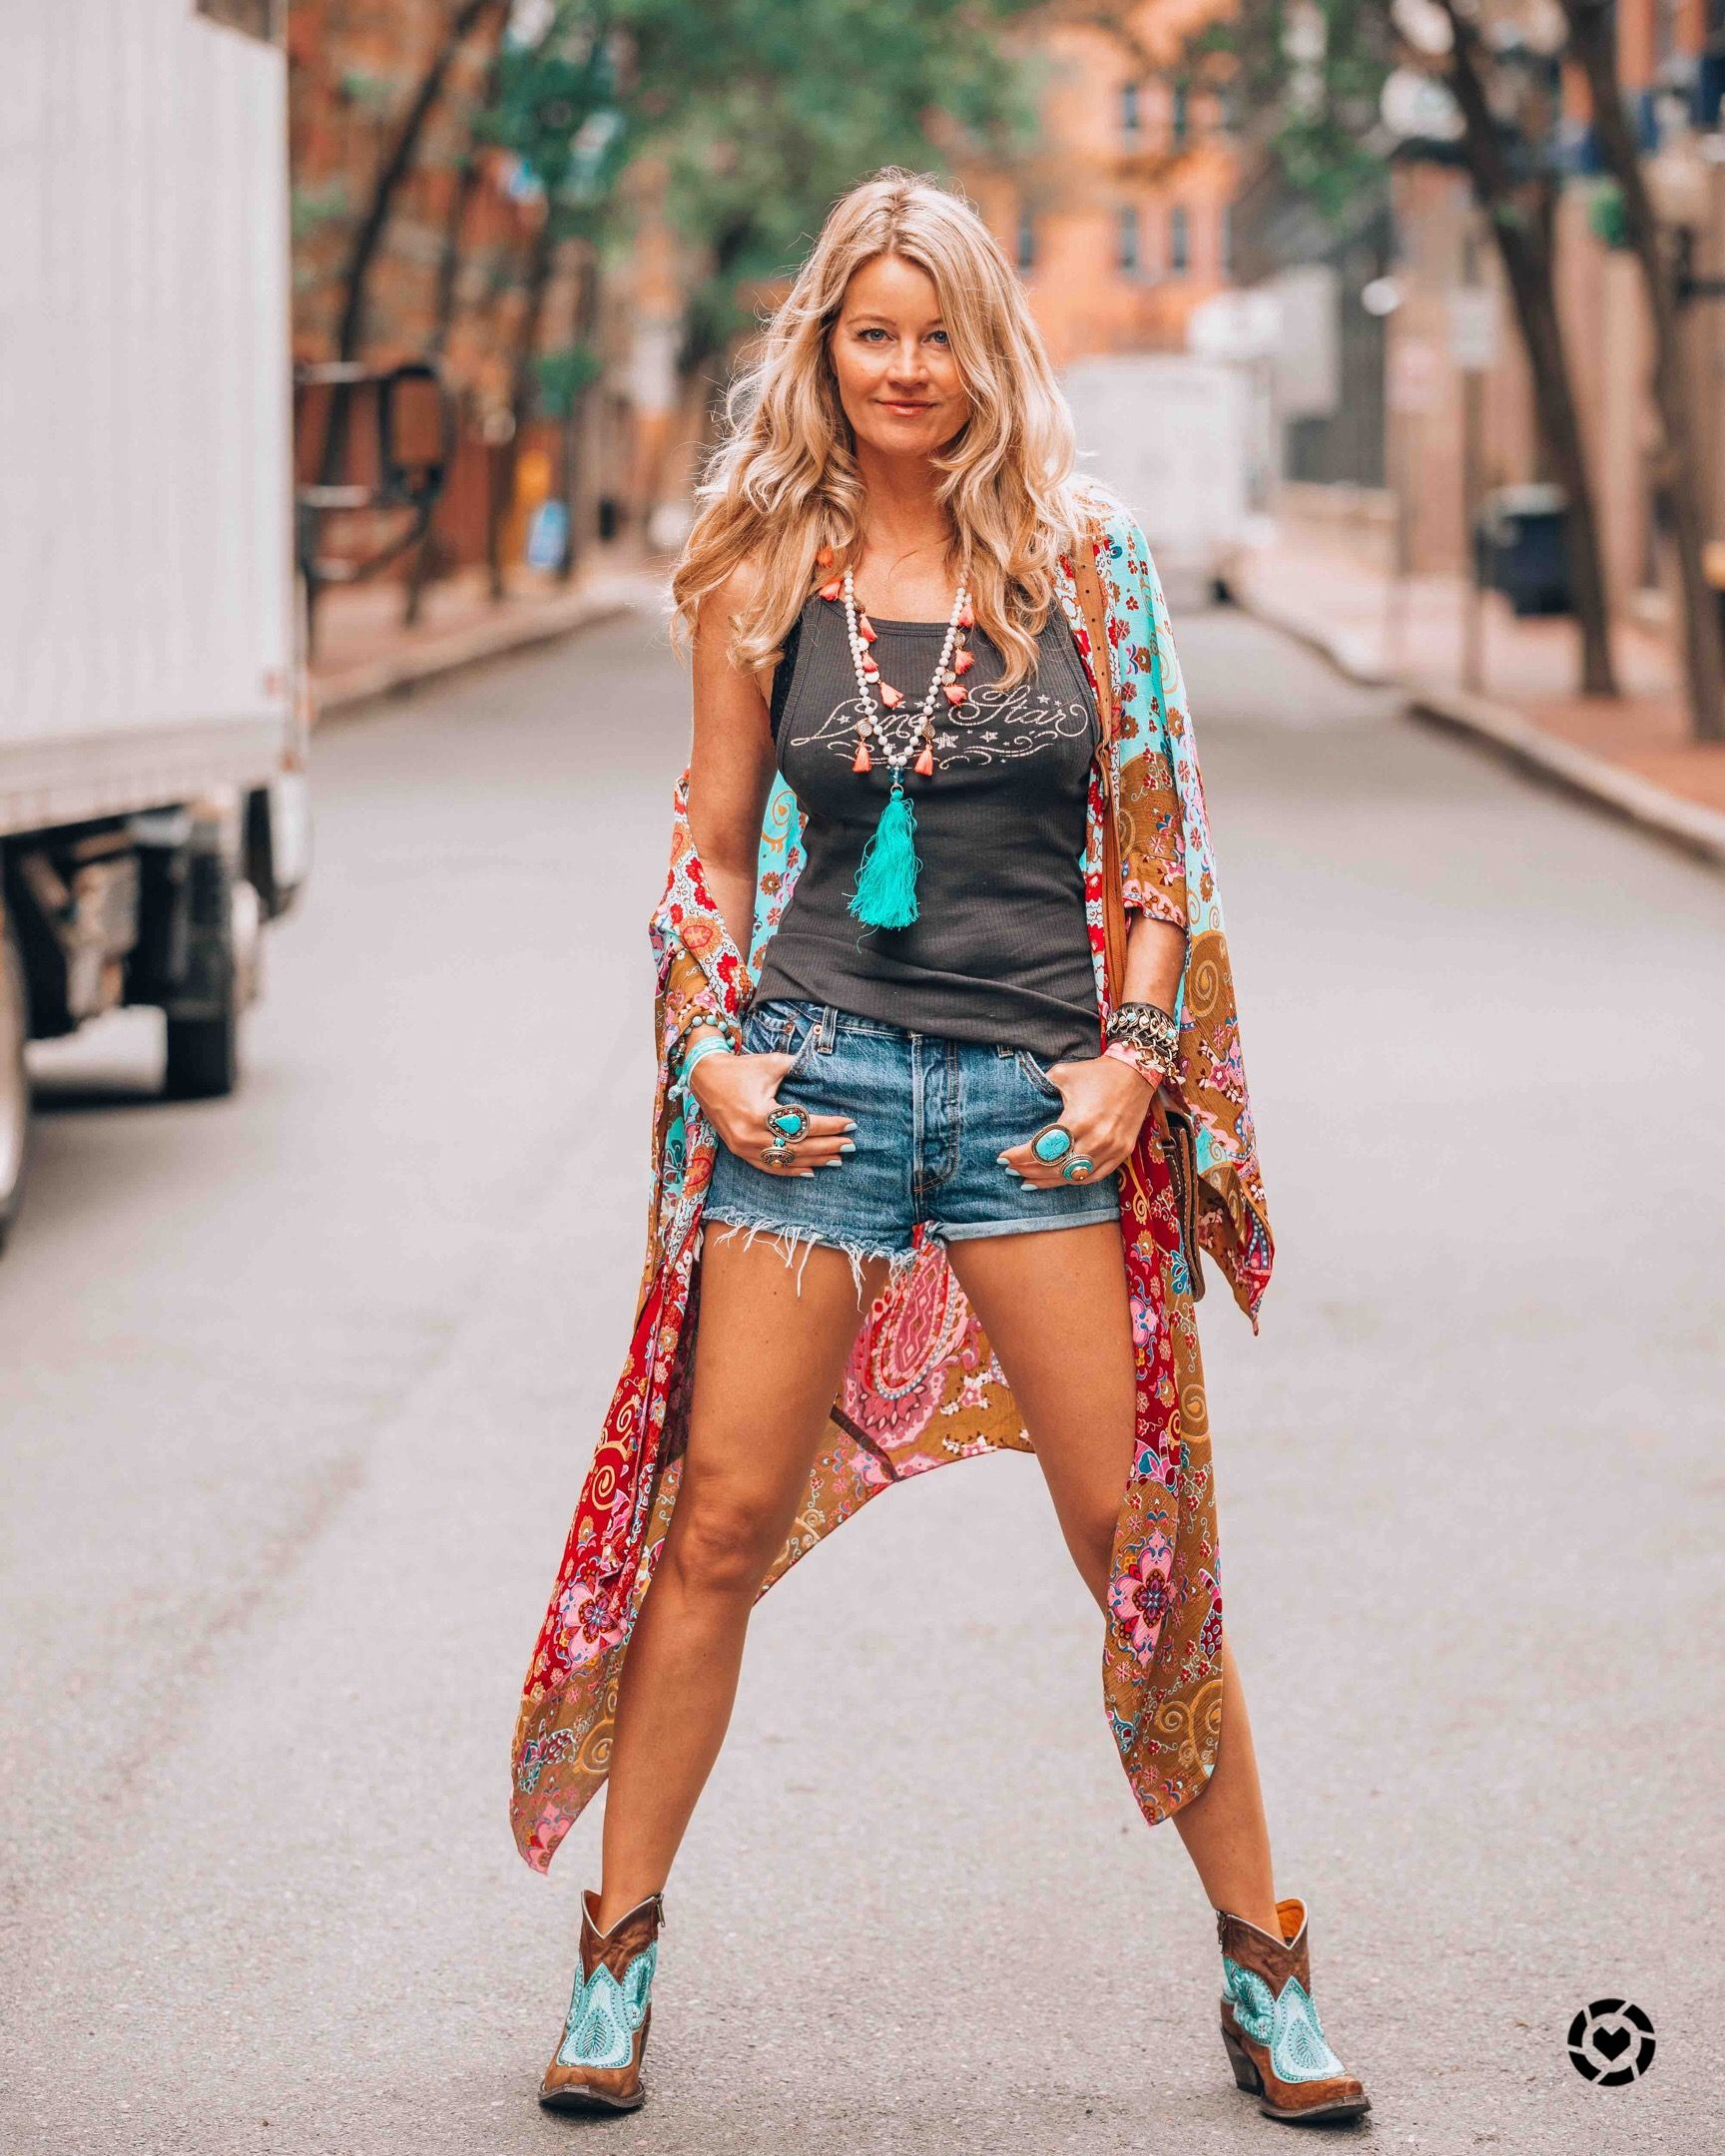 Photo of Festival vibes – My boho gypsy hippie soul